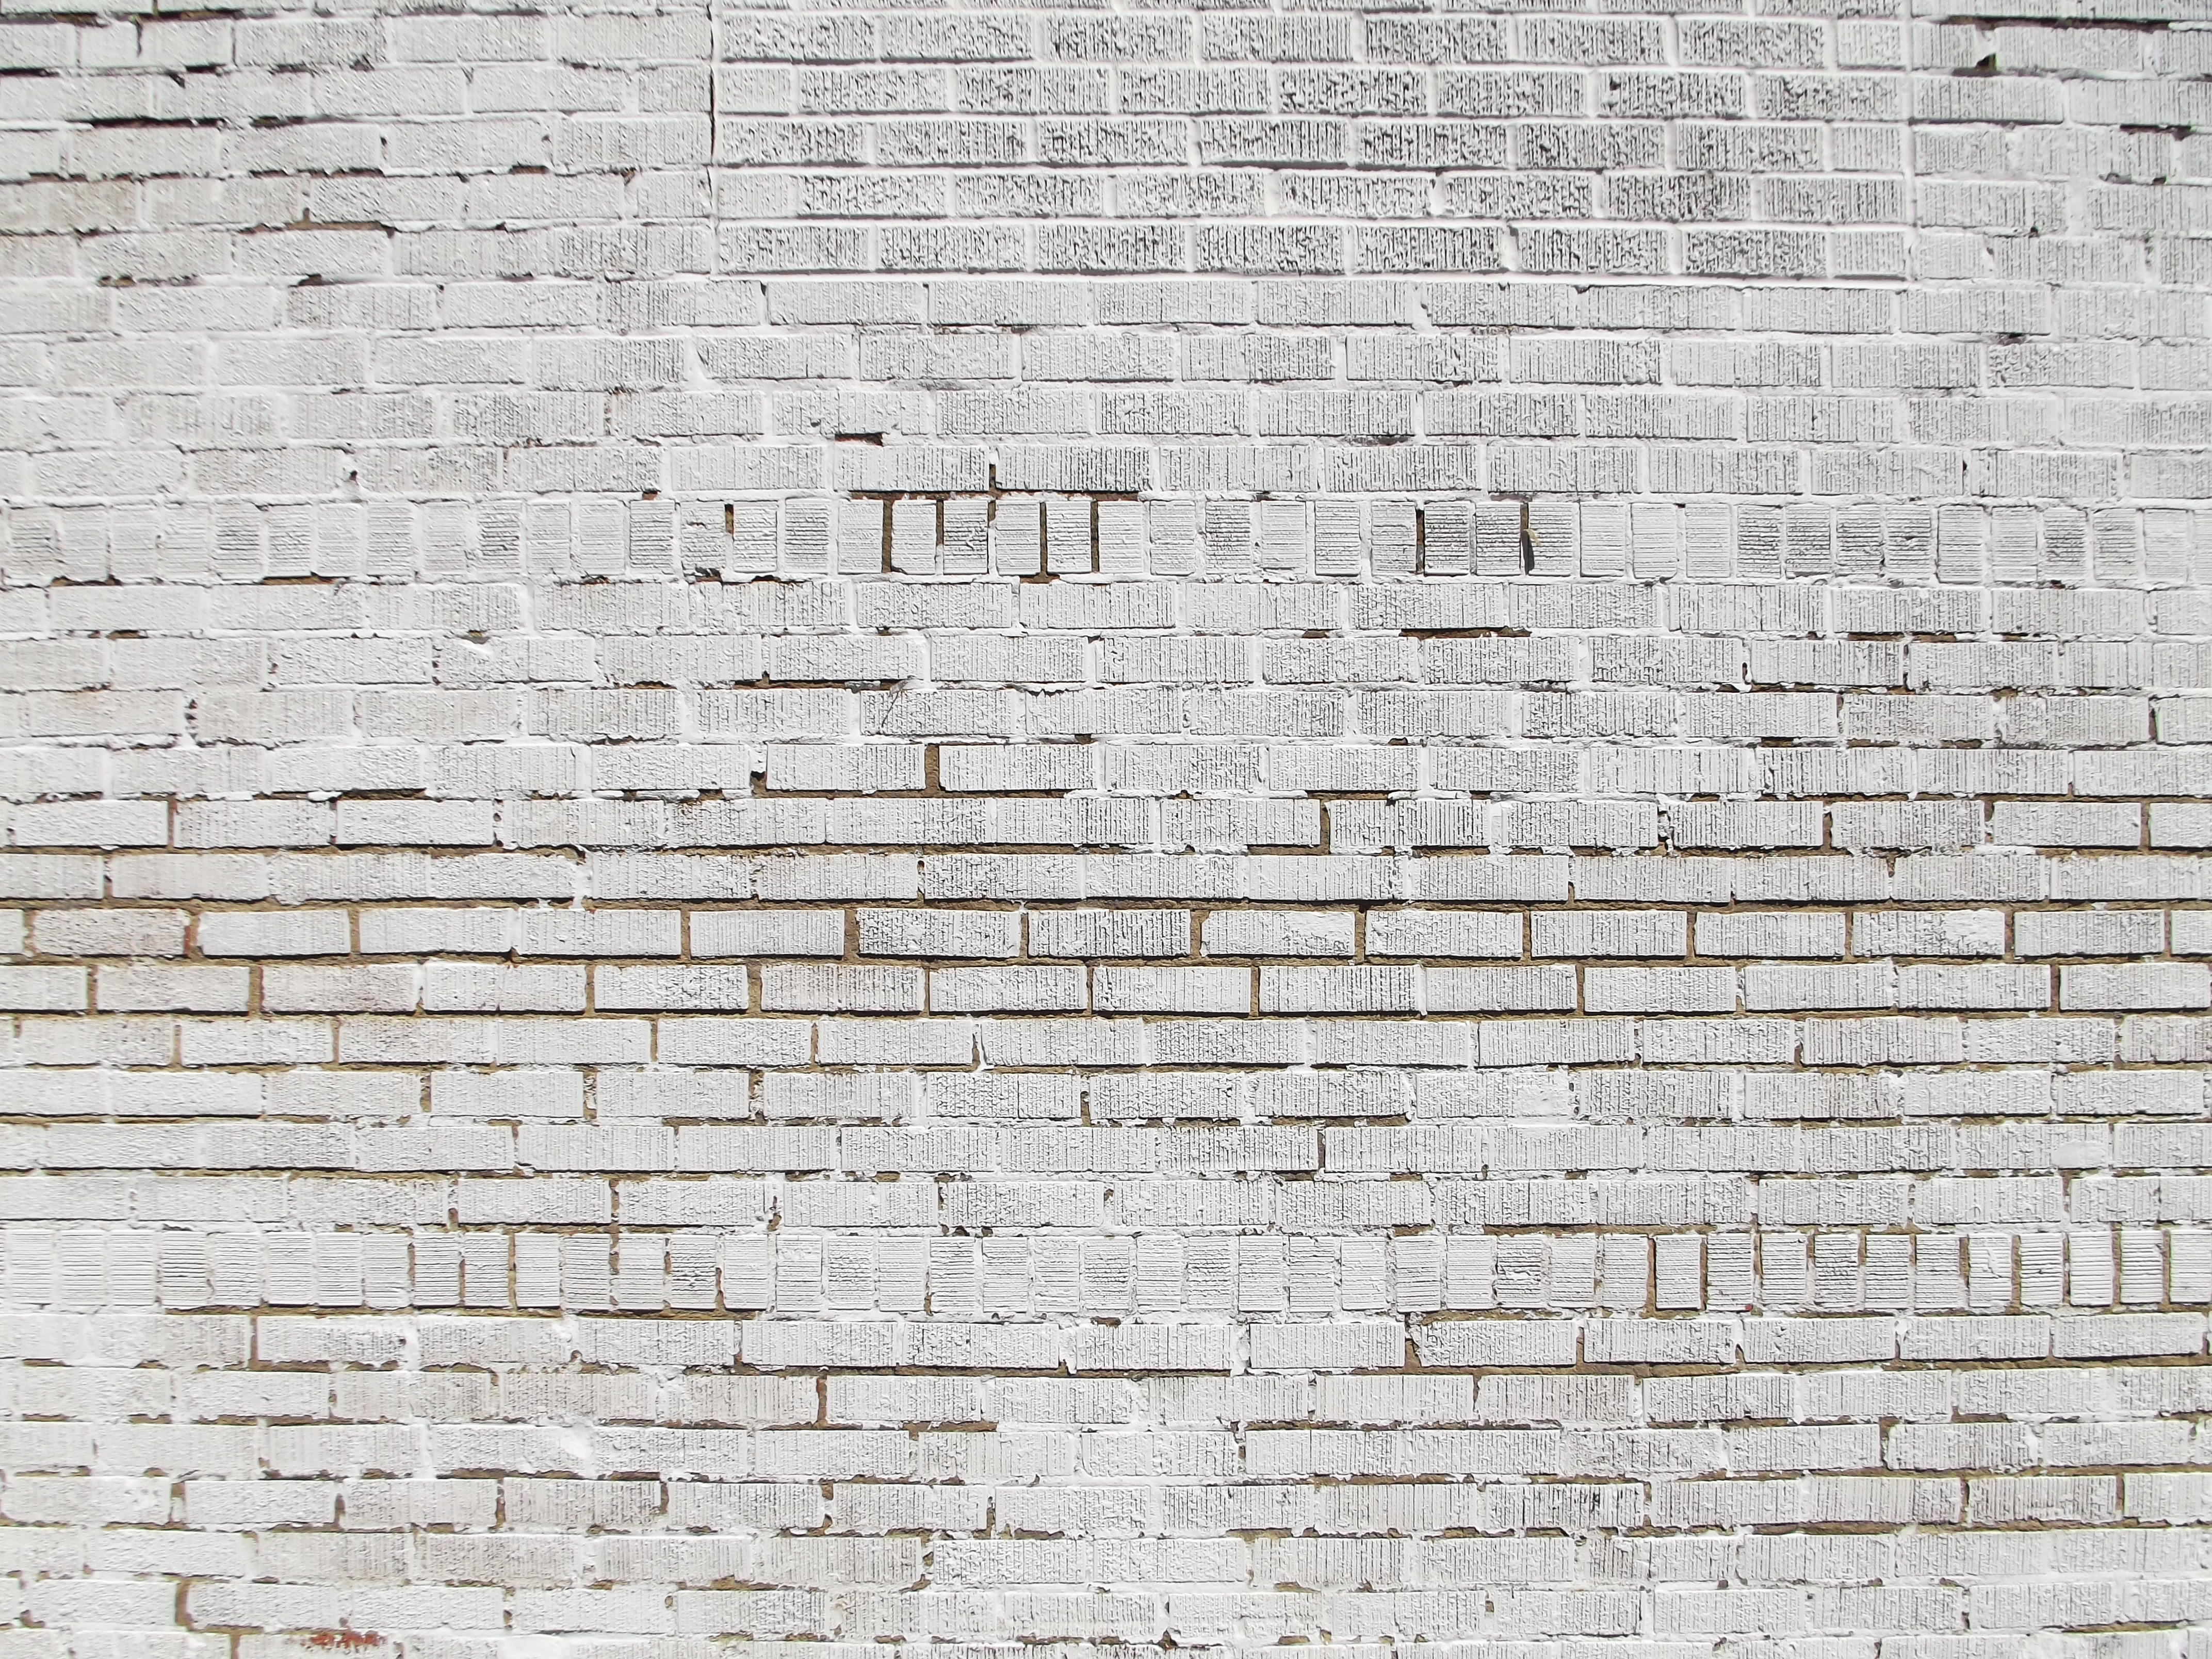 Free Download White Brick Wallpaper Hd White Brick By Ptdesigns 4288x3216 For Your Desktop Mobile Tablet Explore 46 Brick White Wallpaper Faux Brick Wallpaper Brick Wallpaper Home Depot Wallpaper